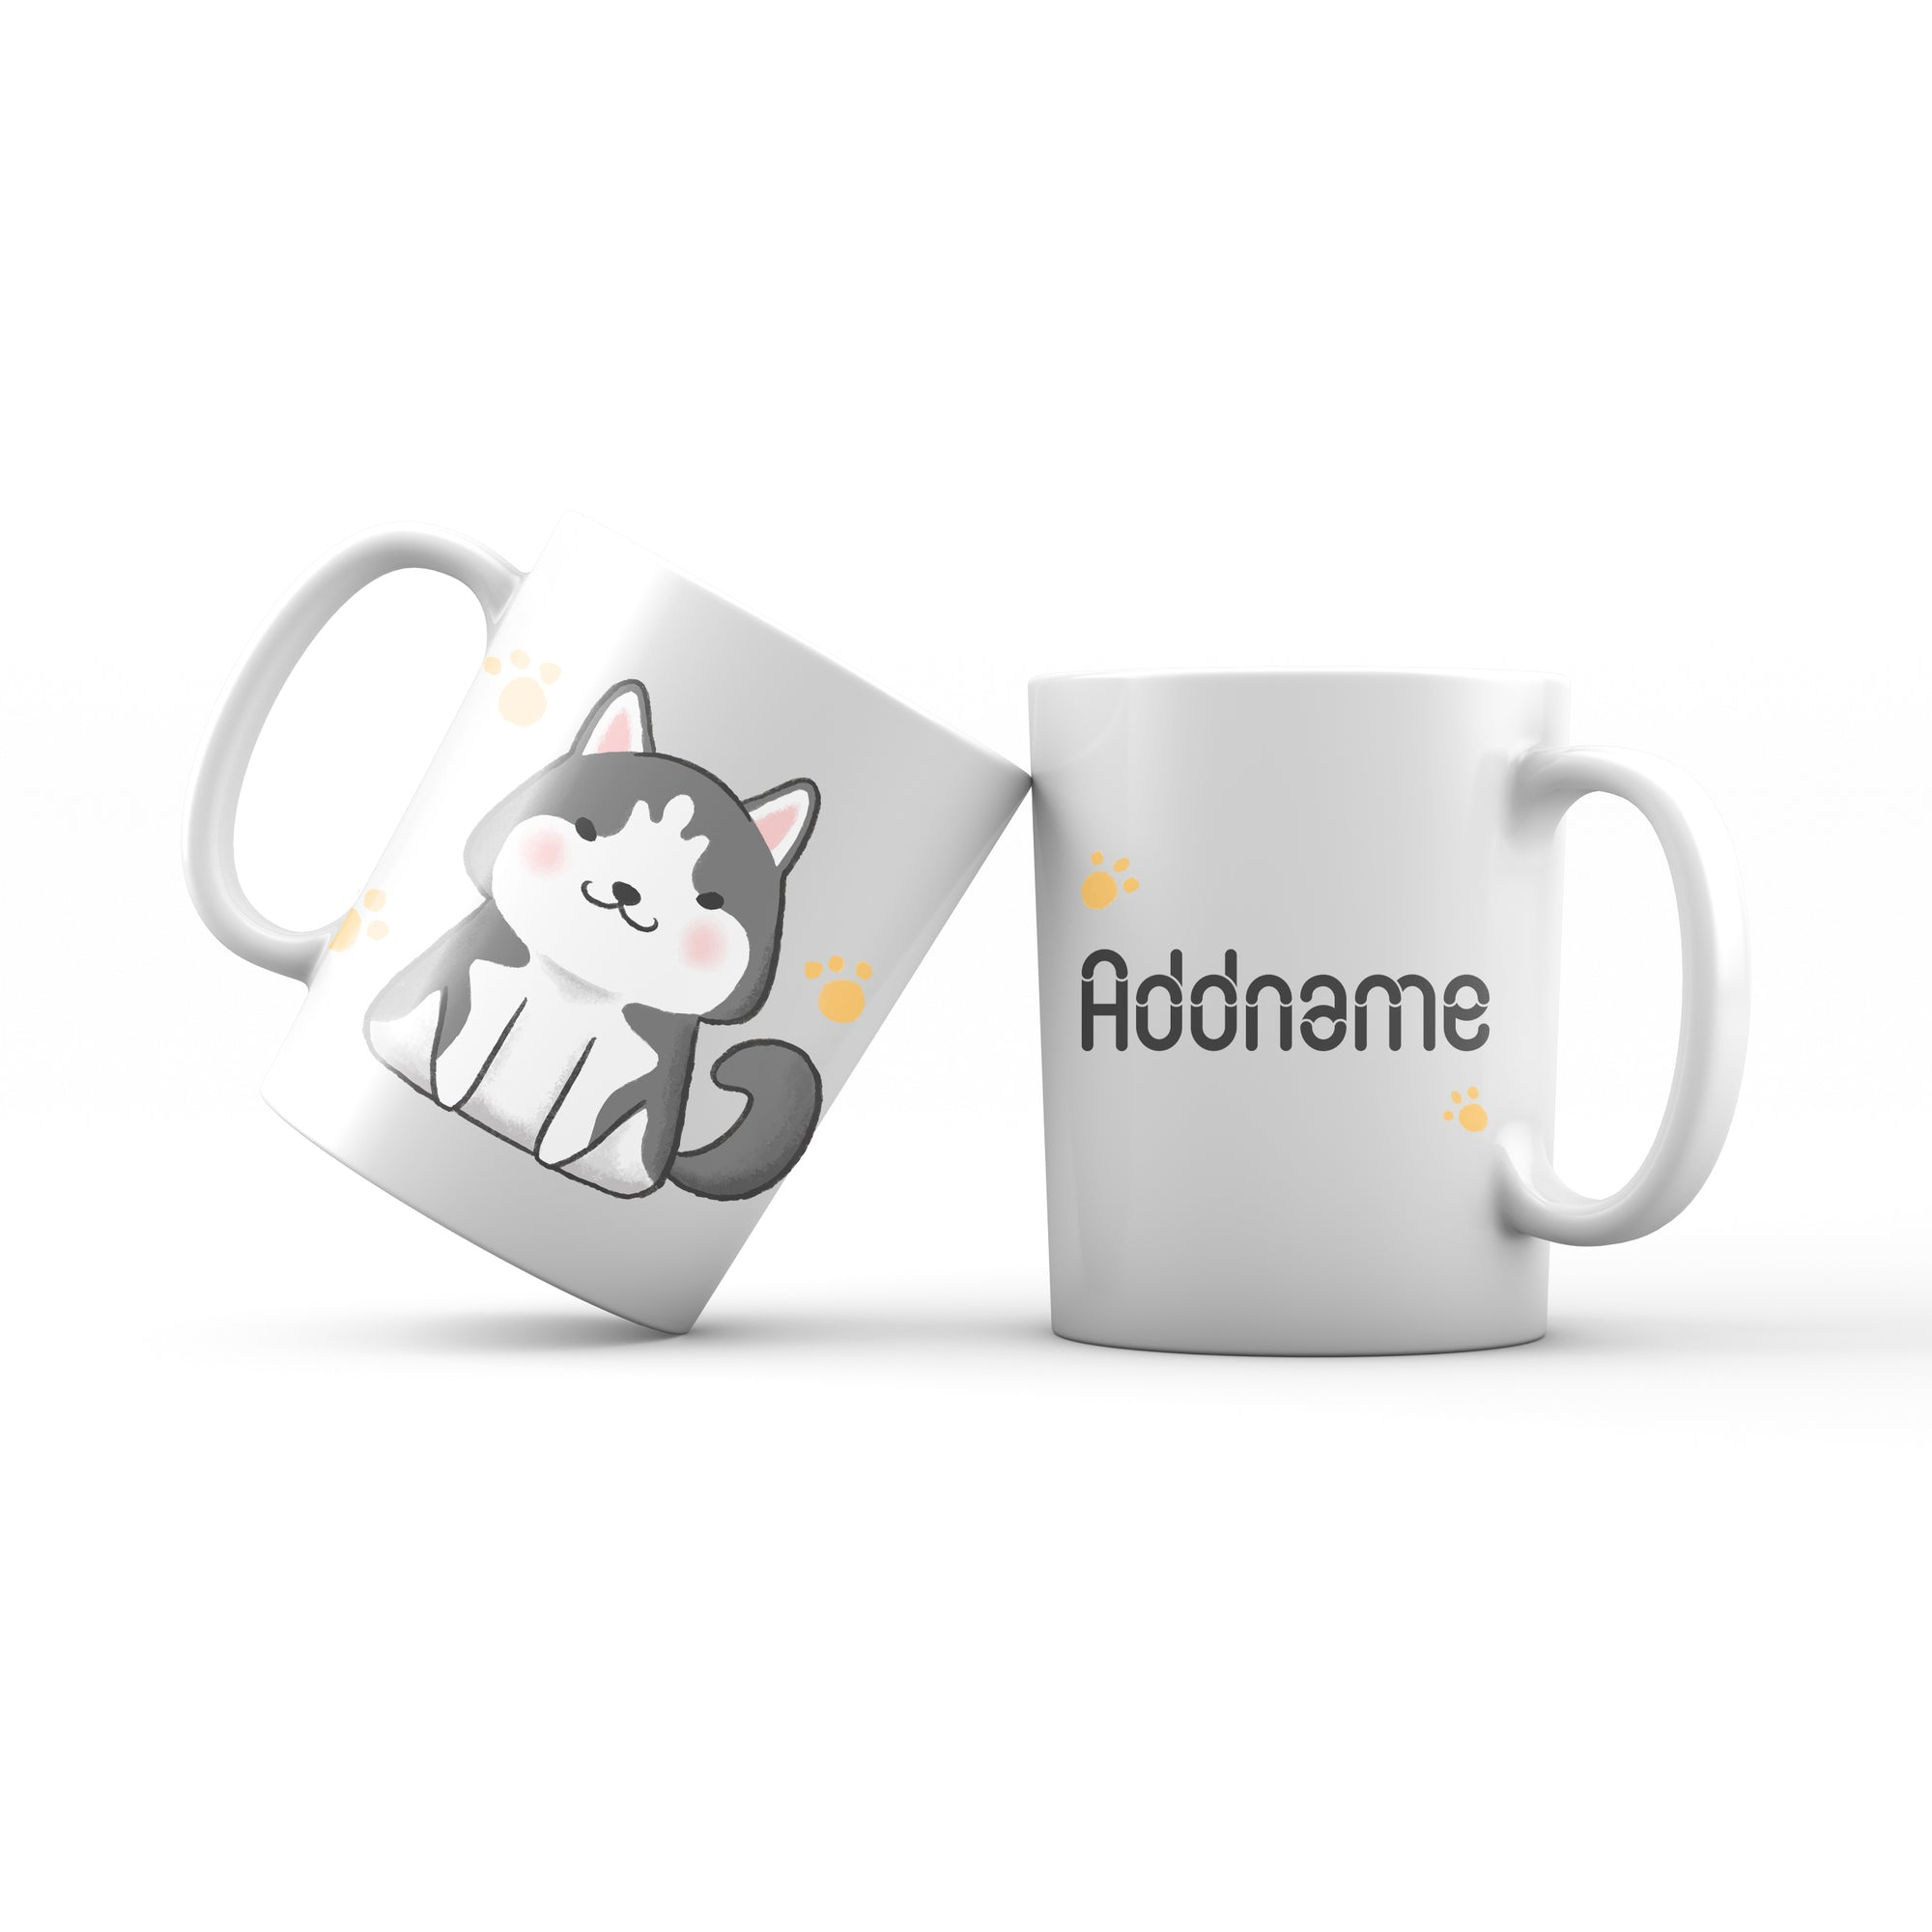 Cute Hand drawn Animals Dogs Husky Addname Mug